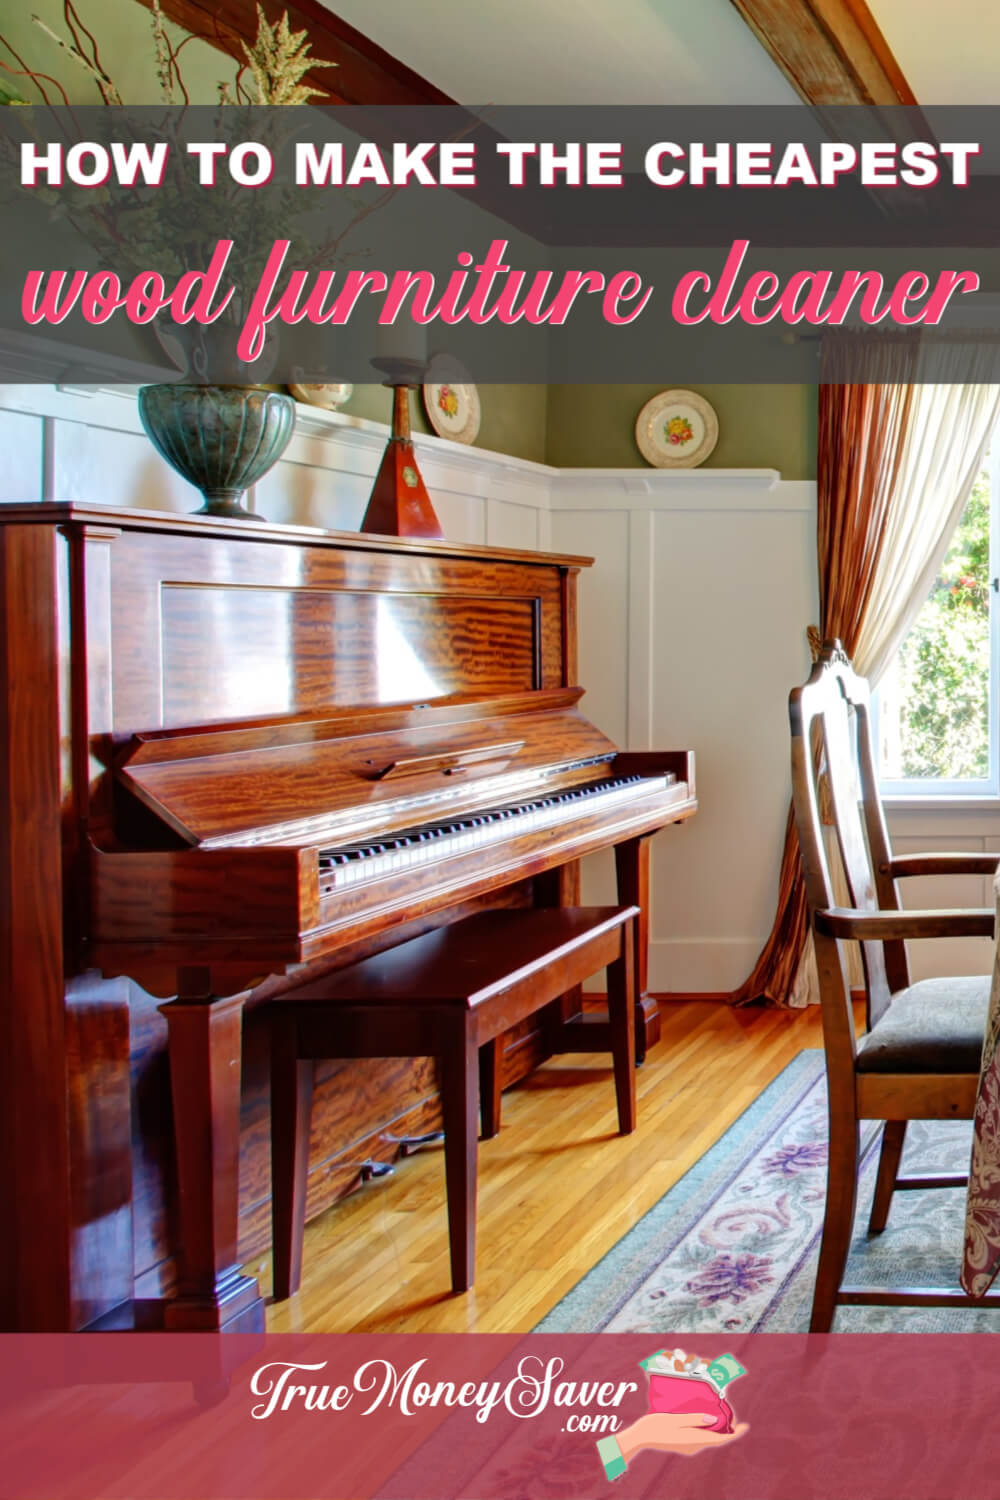 Need a homemade wood cleaner and polish that will save you money and time? Then you need to make this DIY Wood Furniture Cleaner! This wood furniture cleaner polish works great and will save you money! Make this recipe today! #truemoneysaver #savemoney  #diy  #woodcleaner #woodcleaners #diywoodcleaner #woodpolish #woodcleanerrecipe #woodcleanerspray #diycleaner #essentialoils #diycleaners